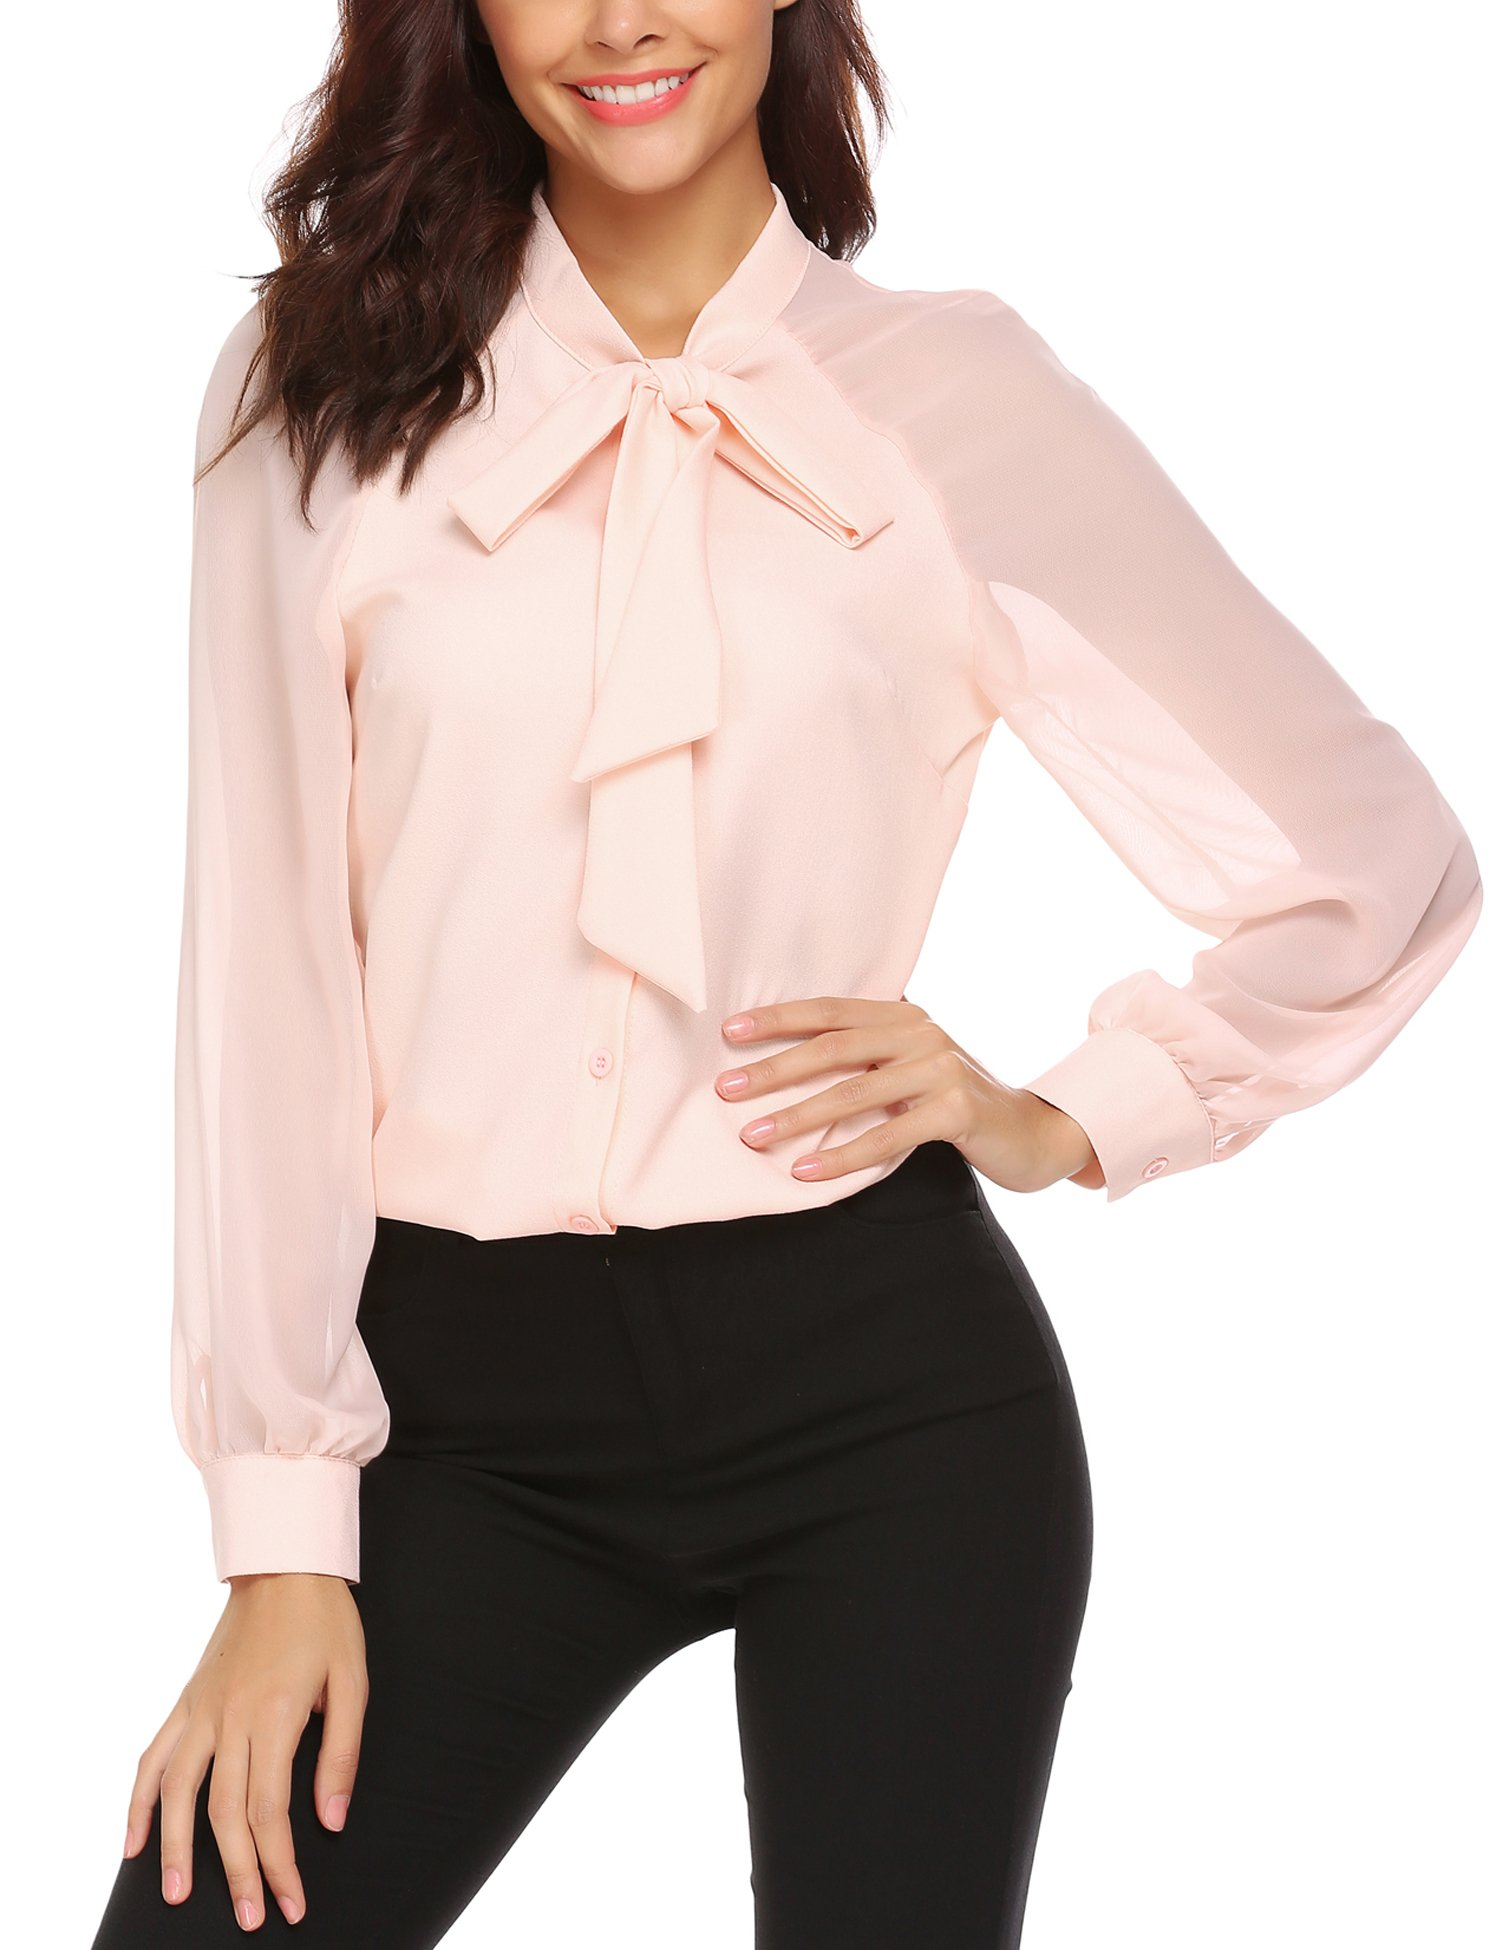 LOMON Womens Blouses for Work,Casual Chiffon Shirts Blouses Tunic Tops